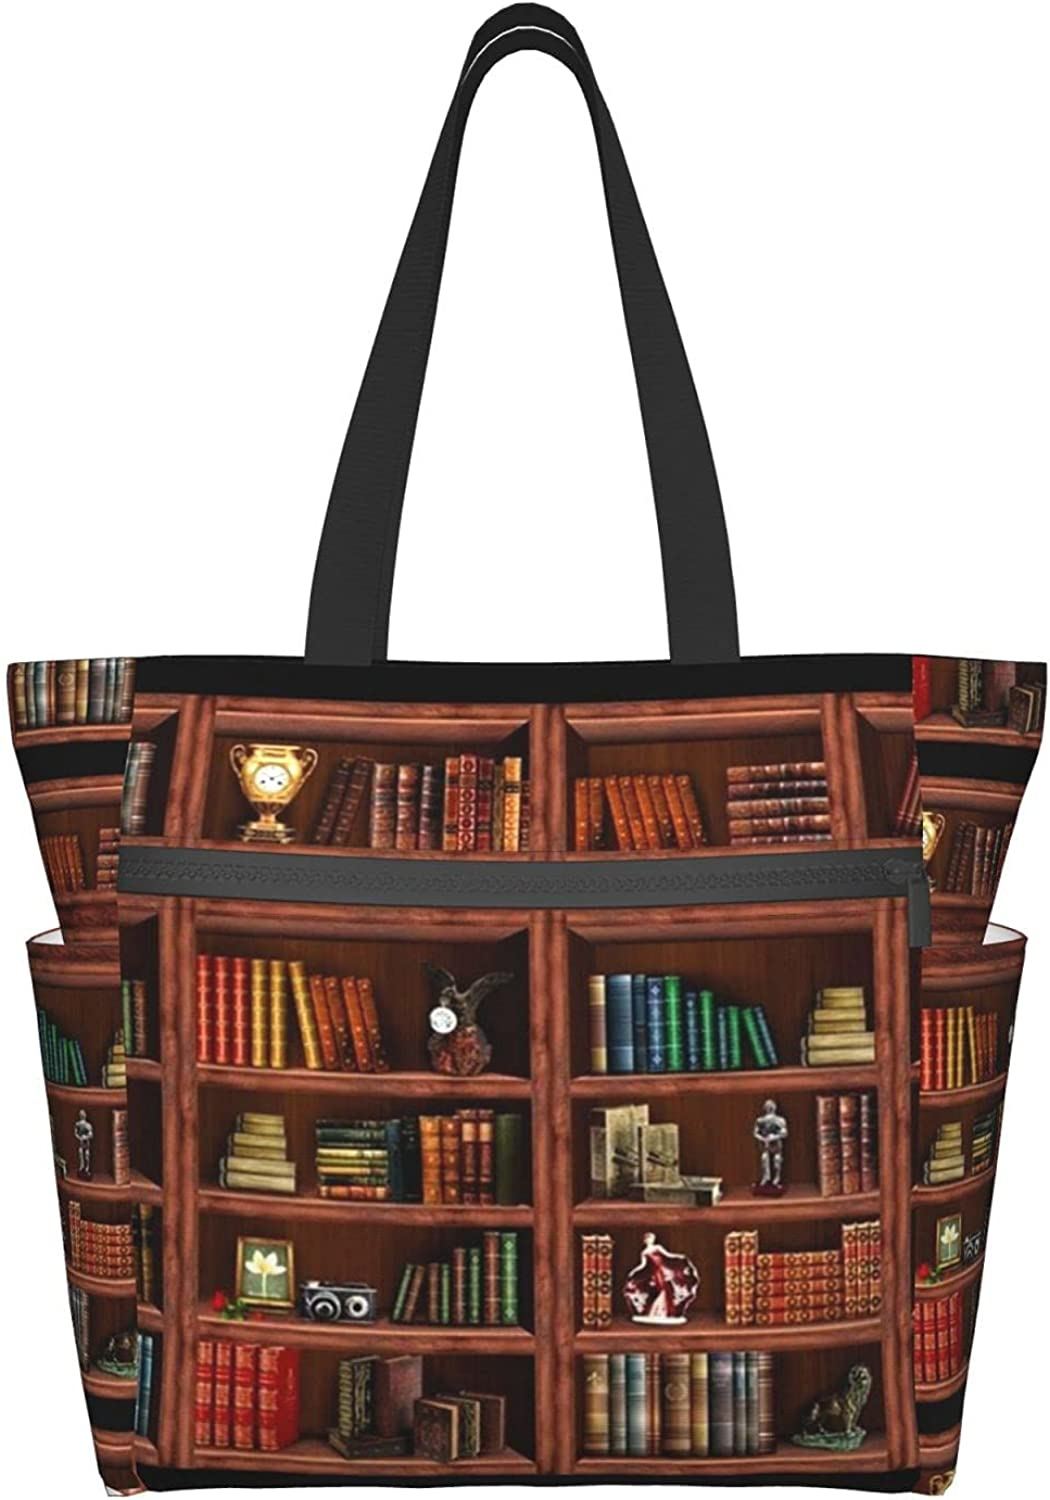 Tote Travel San Antonio Mall Bag For Limited Special Price Women Shoulder Retro With Bookcase Many